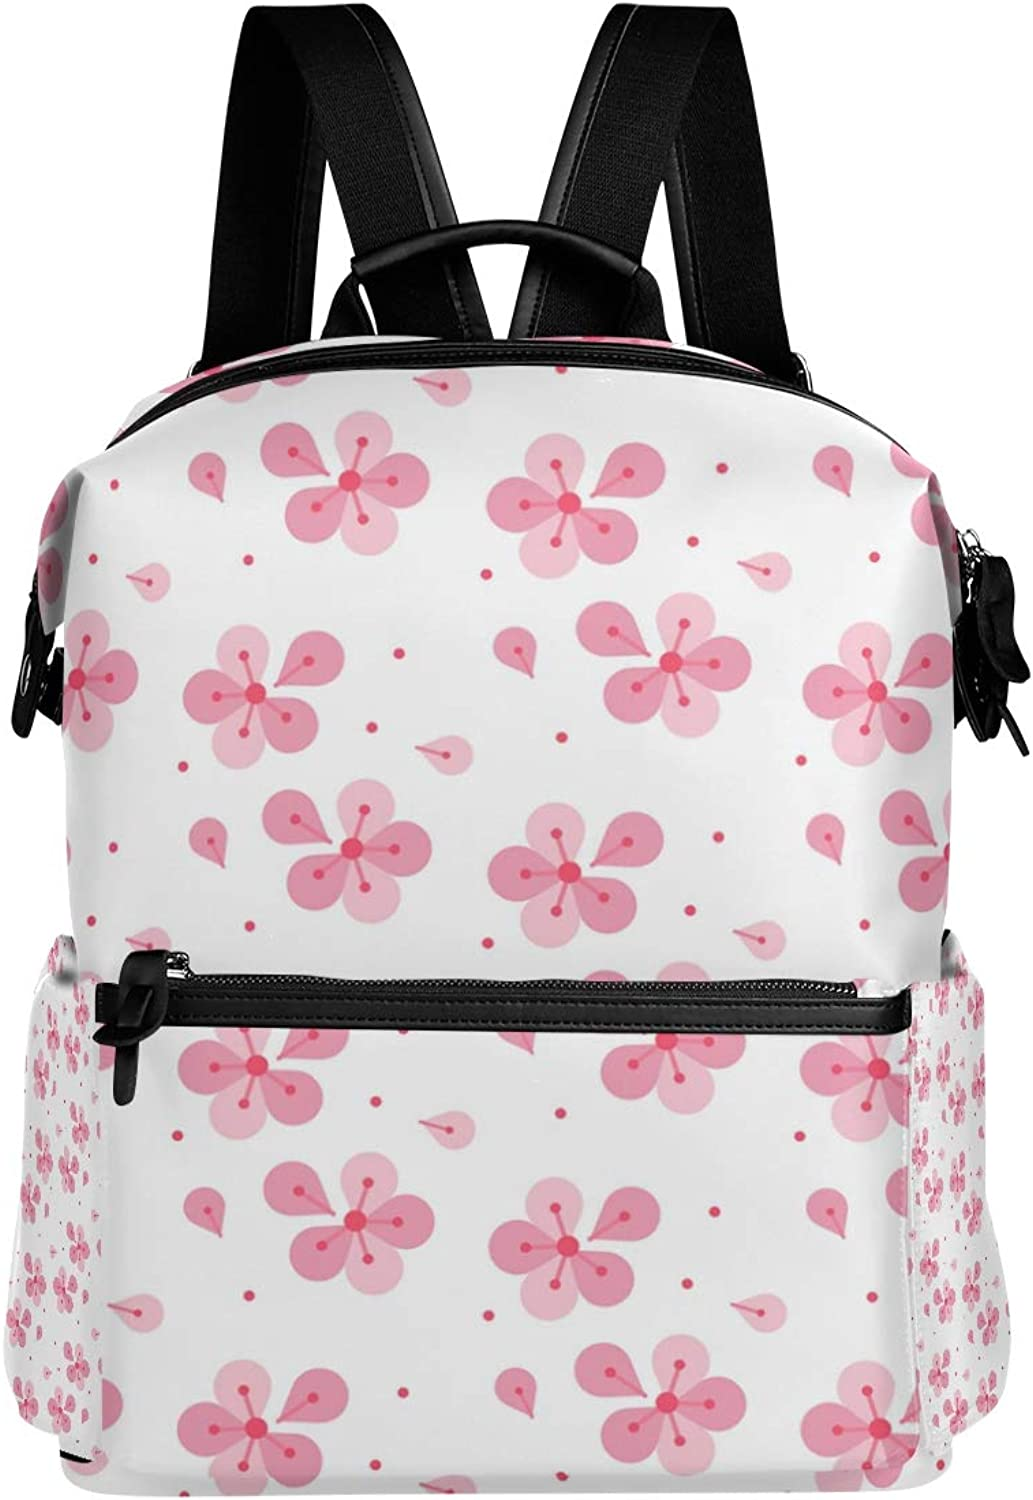 MONTOJ Pink Joint Flowers Pattern Leather Travel Bag Campus Backpack